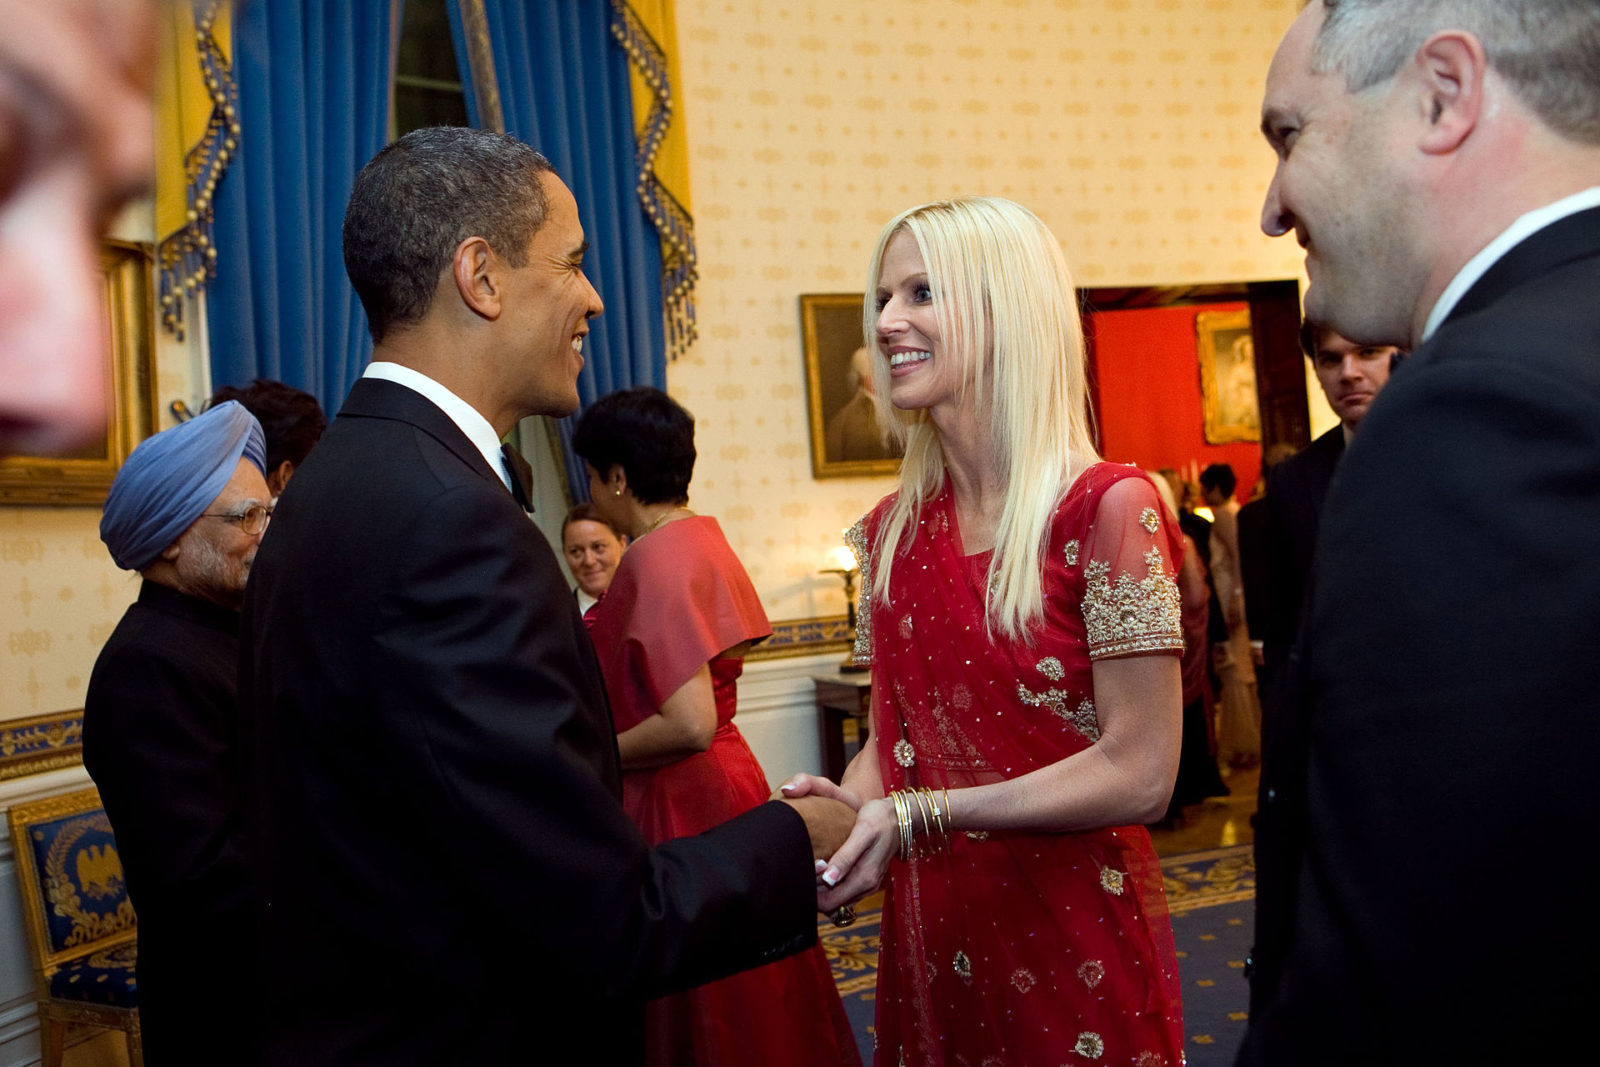 Michaele Salahi and Barack Obama at the 2009 White House State Dinner